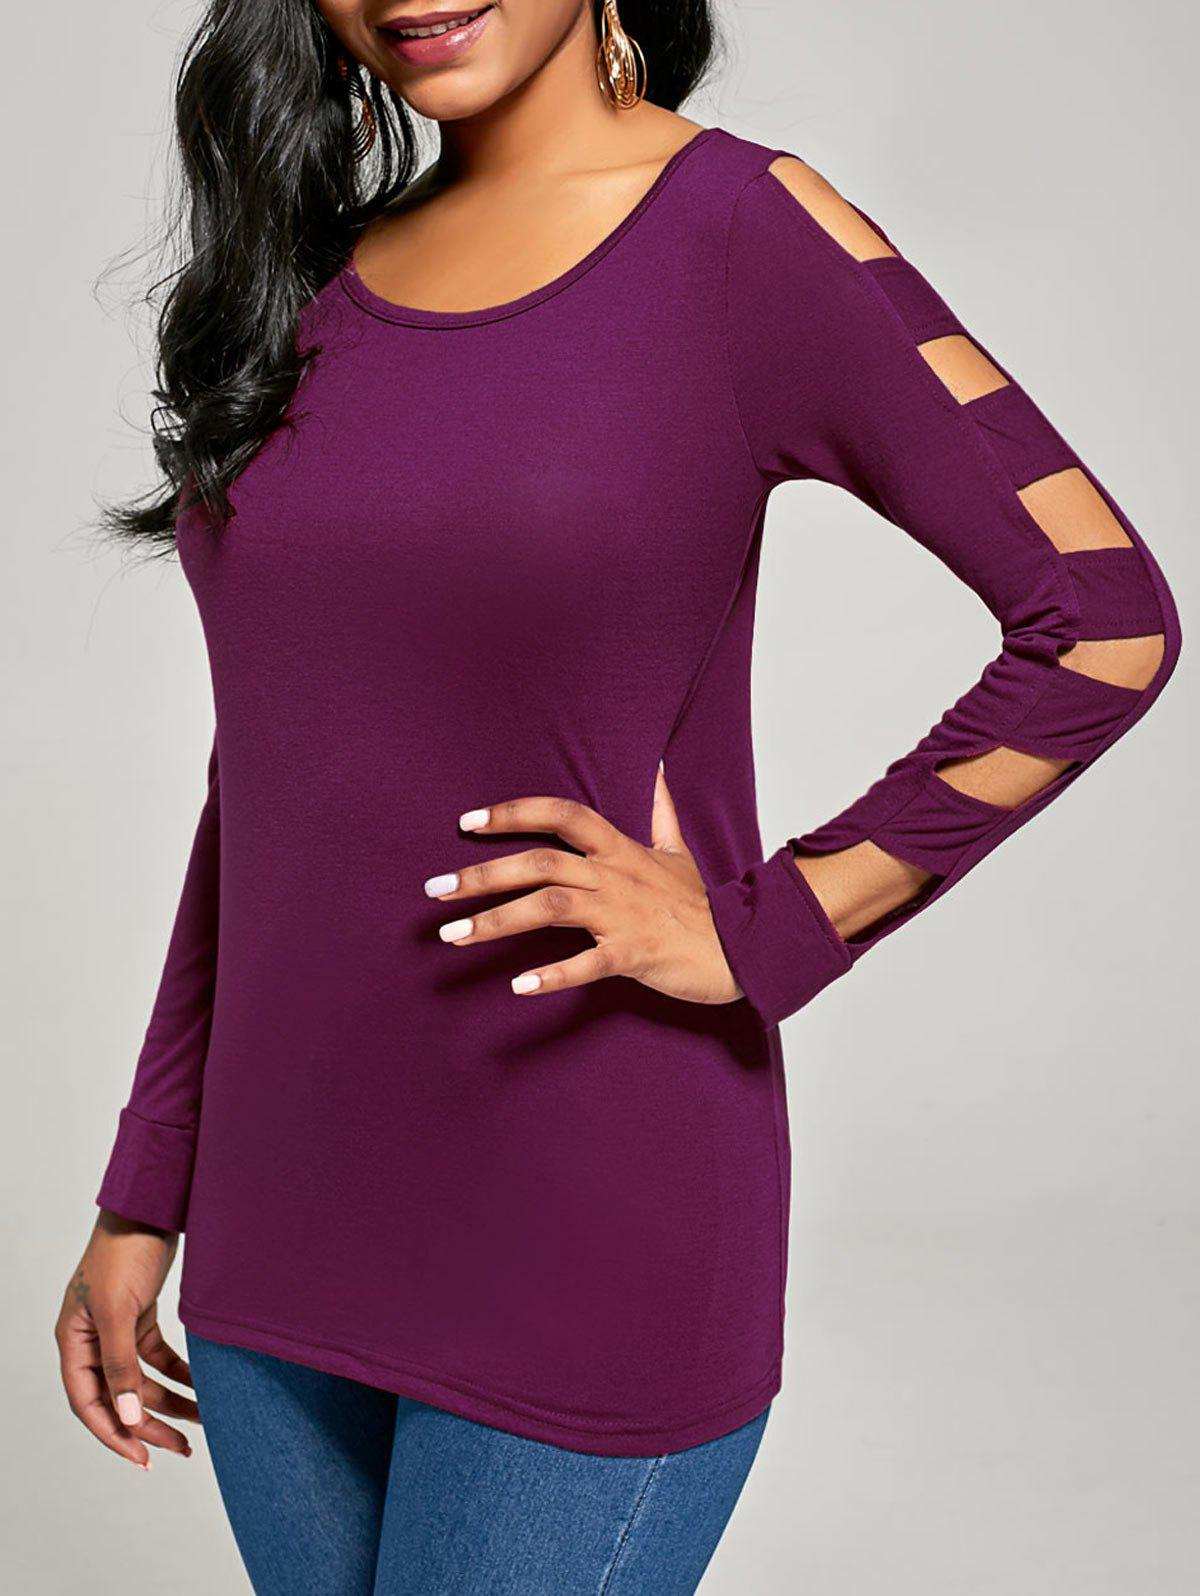 Elegant Women's Solid Color Cut Out T-Shirt For Women - PURPLISH RED S